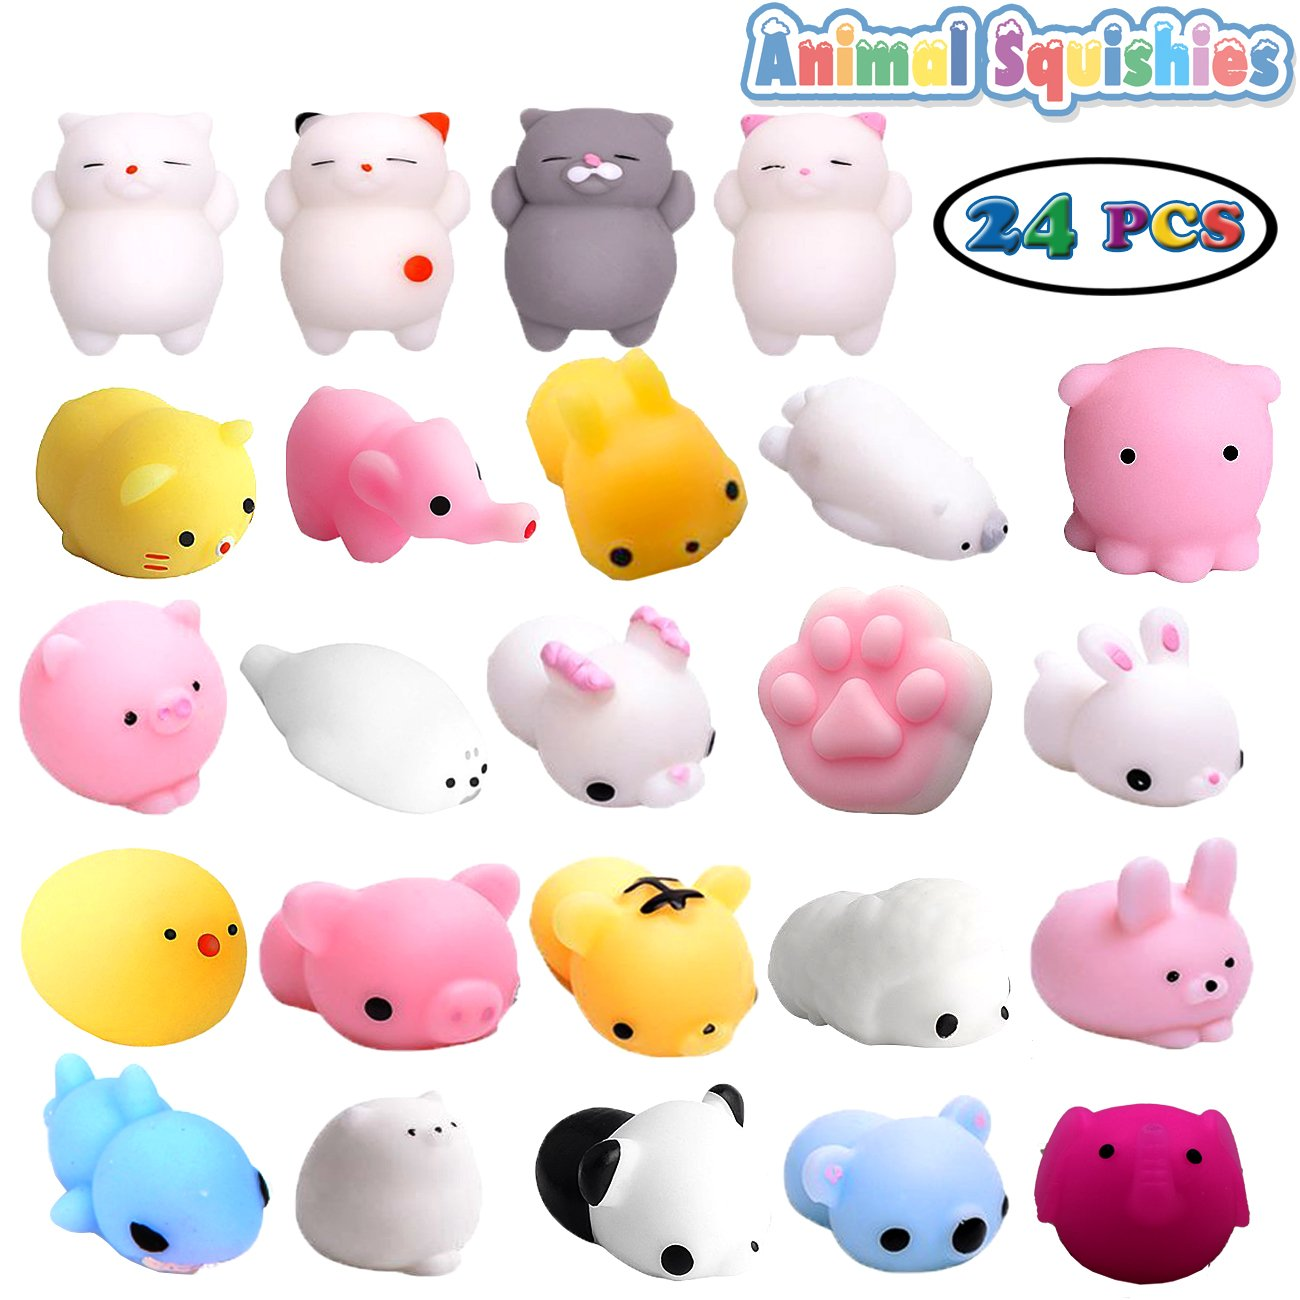 Easter Day Gifts, 24 Pack Mini Mochi Squishy Toys, Animals Stress Toys Kawaii Cartoon Squishy Panda Pig Elephant tiger Squishy Cat Stress Reliever Anxiety Toys For Children (24 Pack Mochi Squishy)